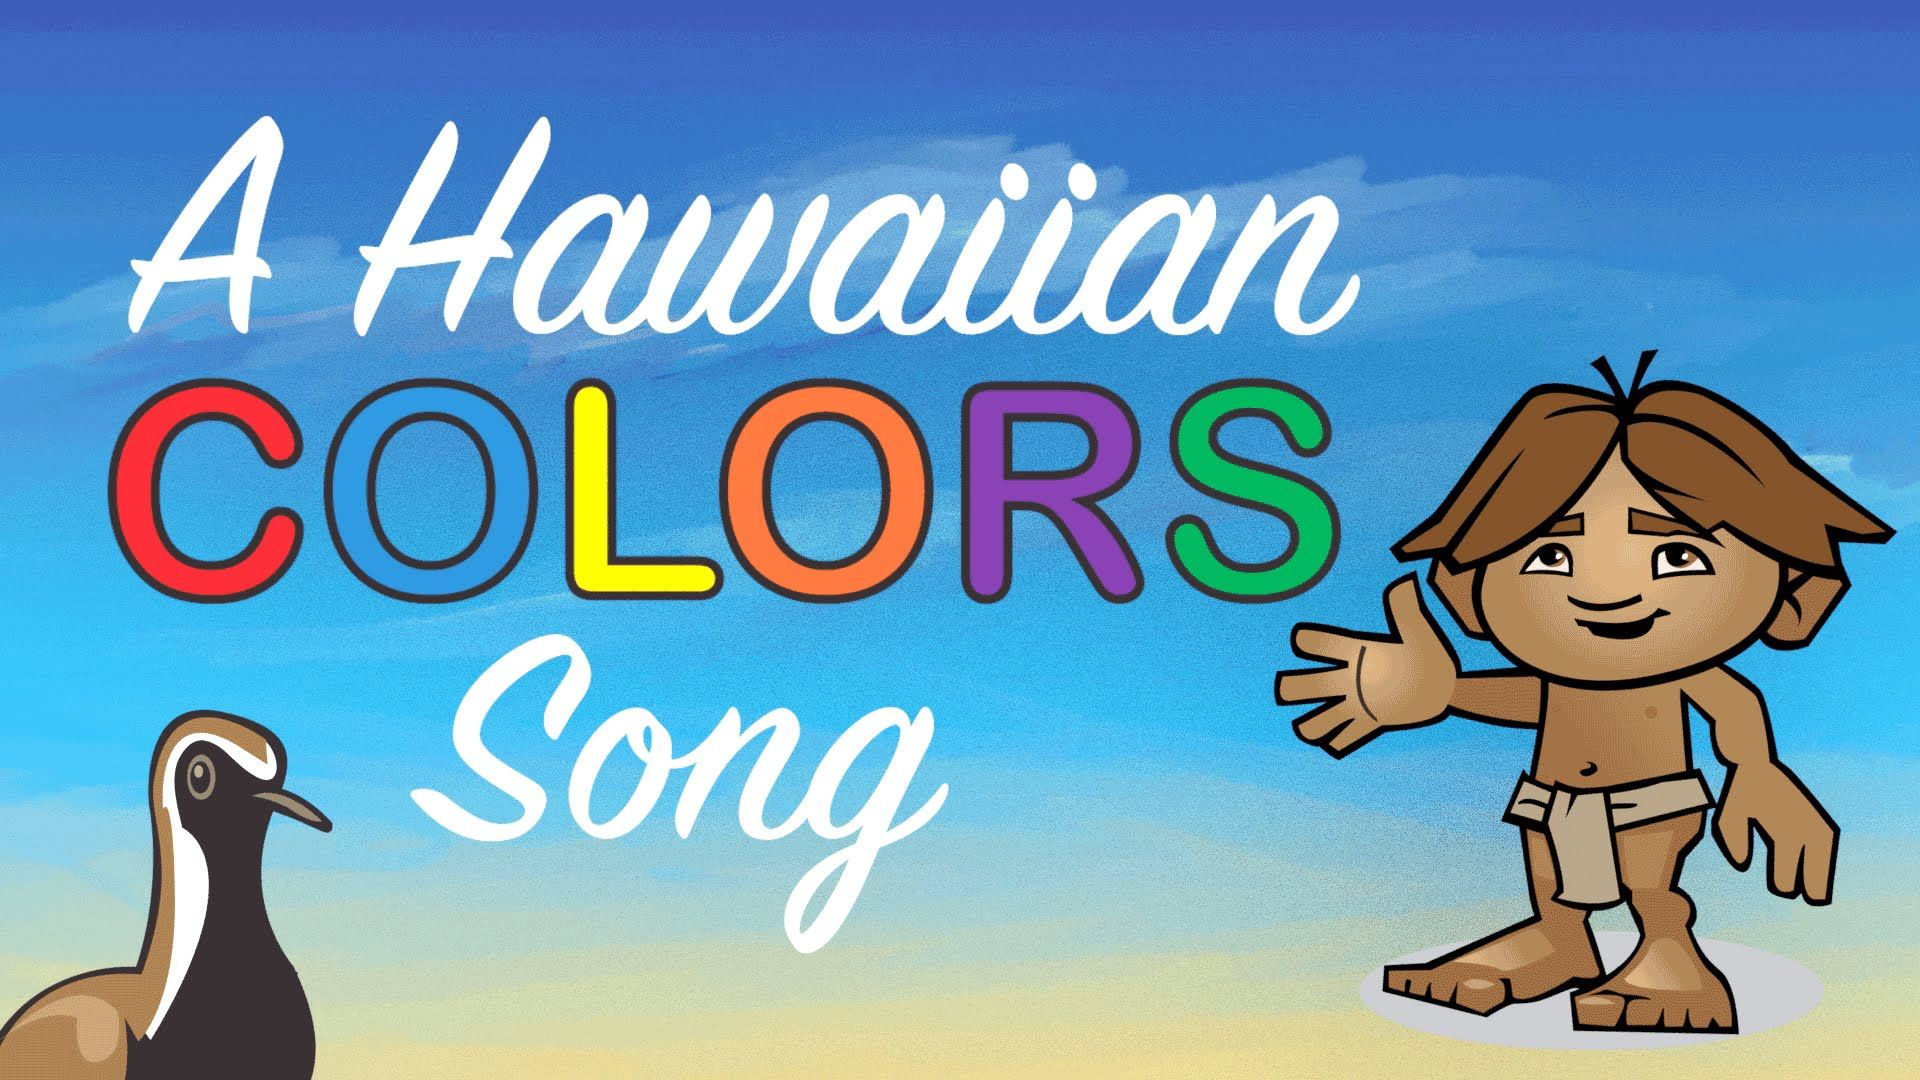 Learn The Hawaiian Colors In Lelo Hawai I With Our Colorfully Animated Learning Video Perfect